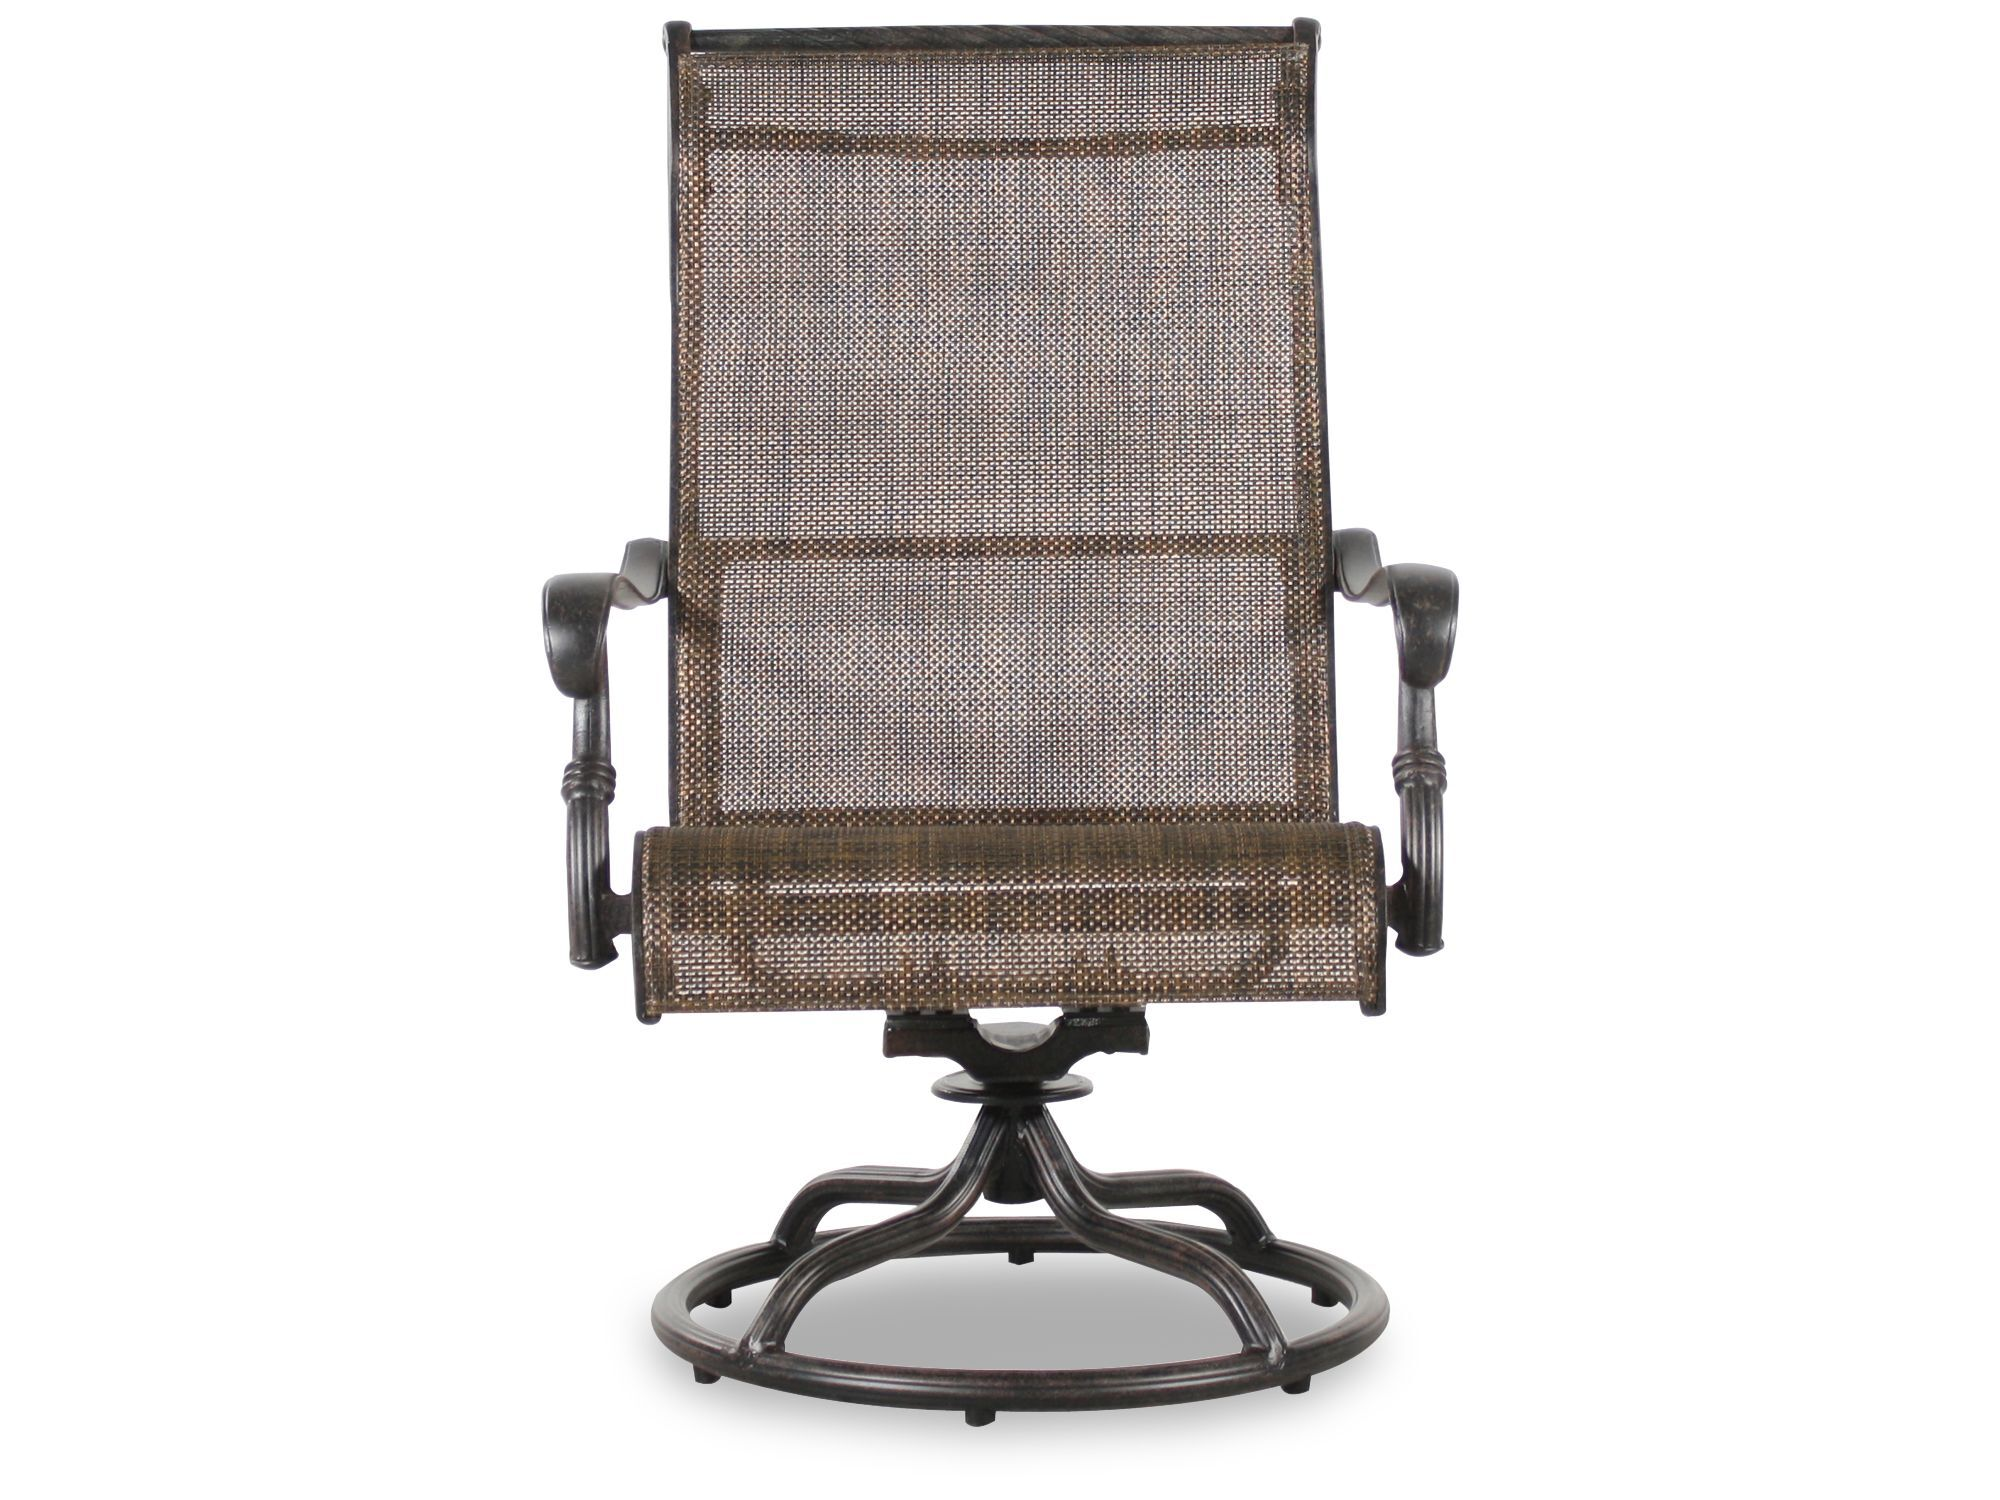 sling back patio chairs chair and a half swivel rocker recliner screen aluminum in brown mathis